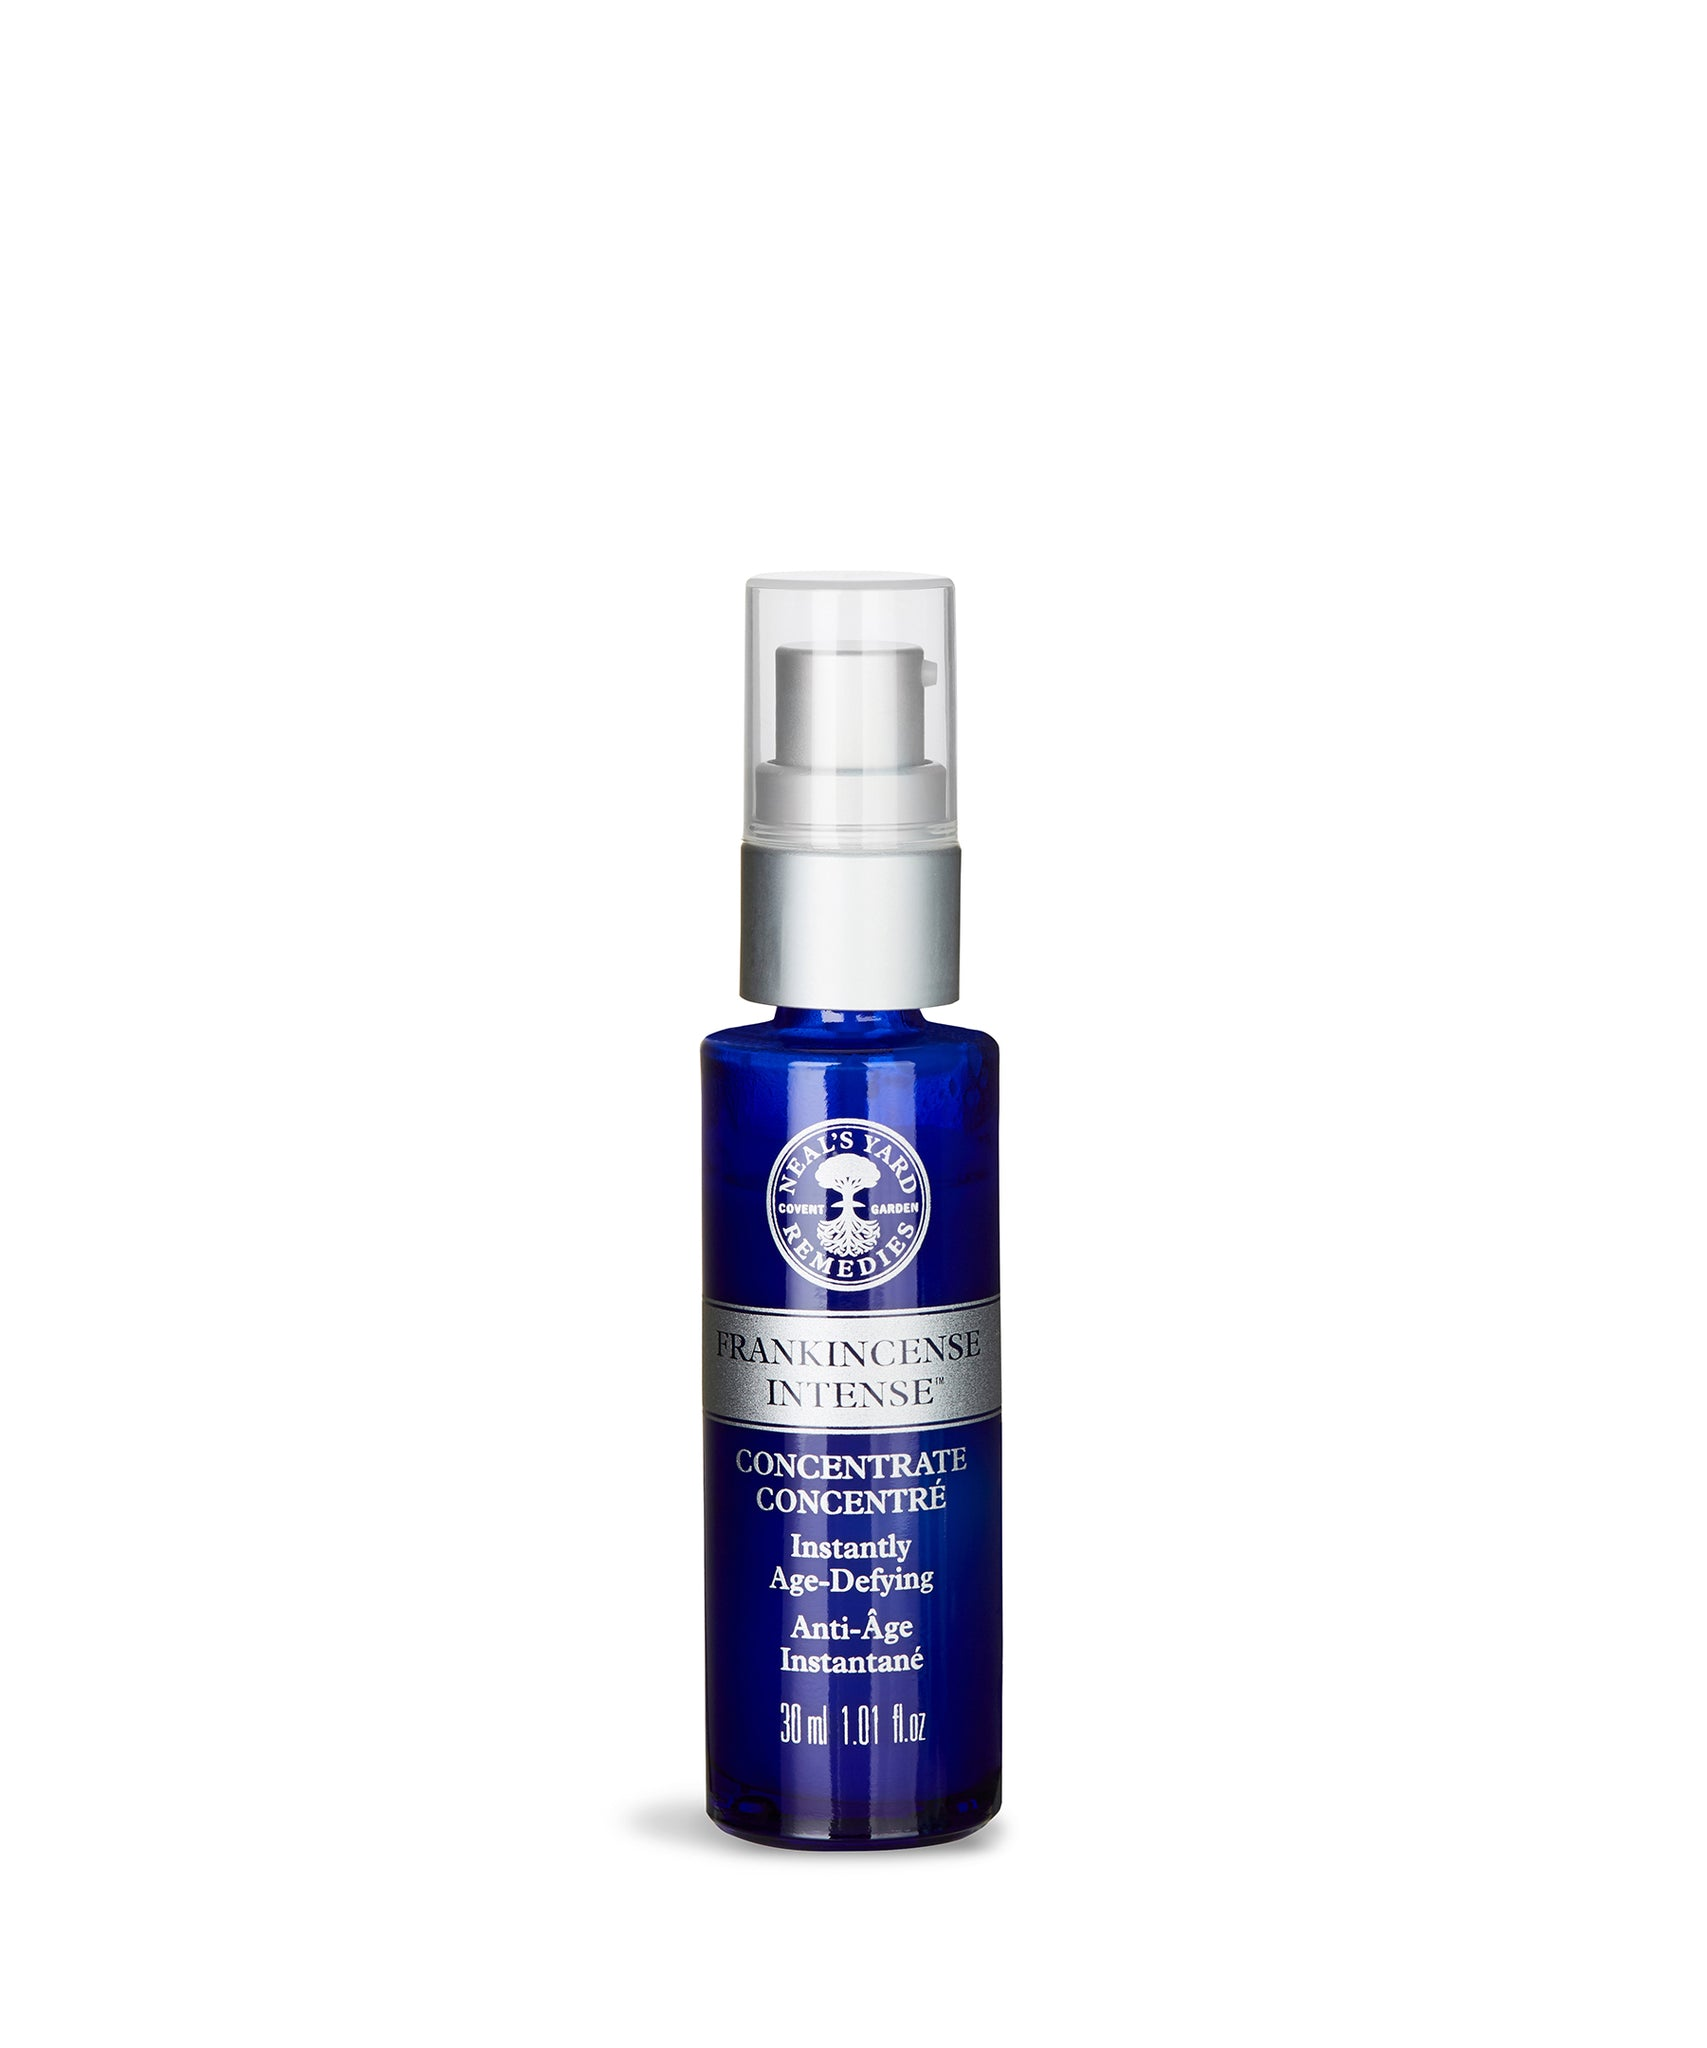 Frankincense Intense Concentrate by Neal's Yard Remedies